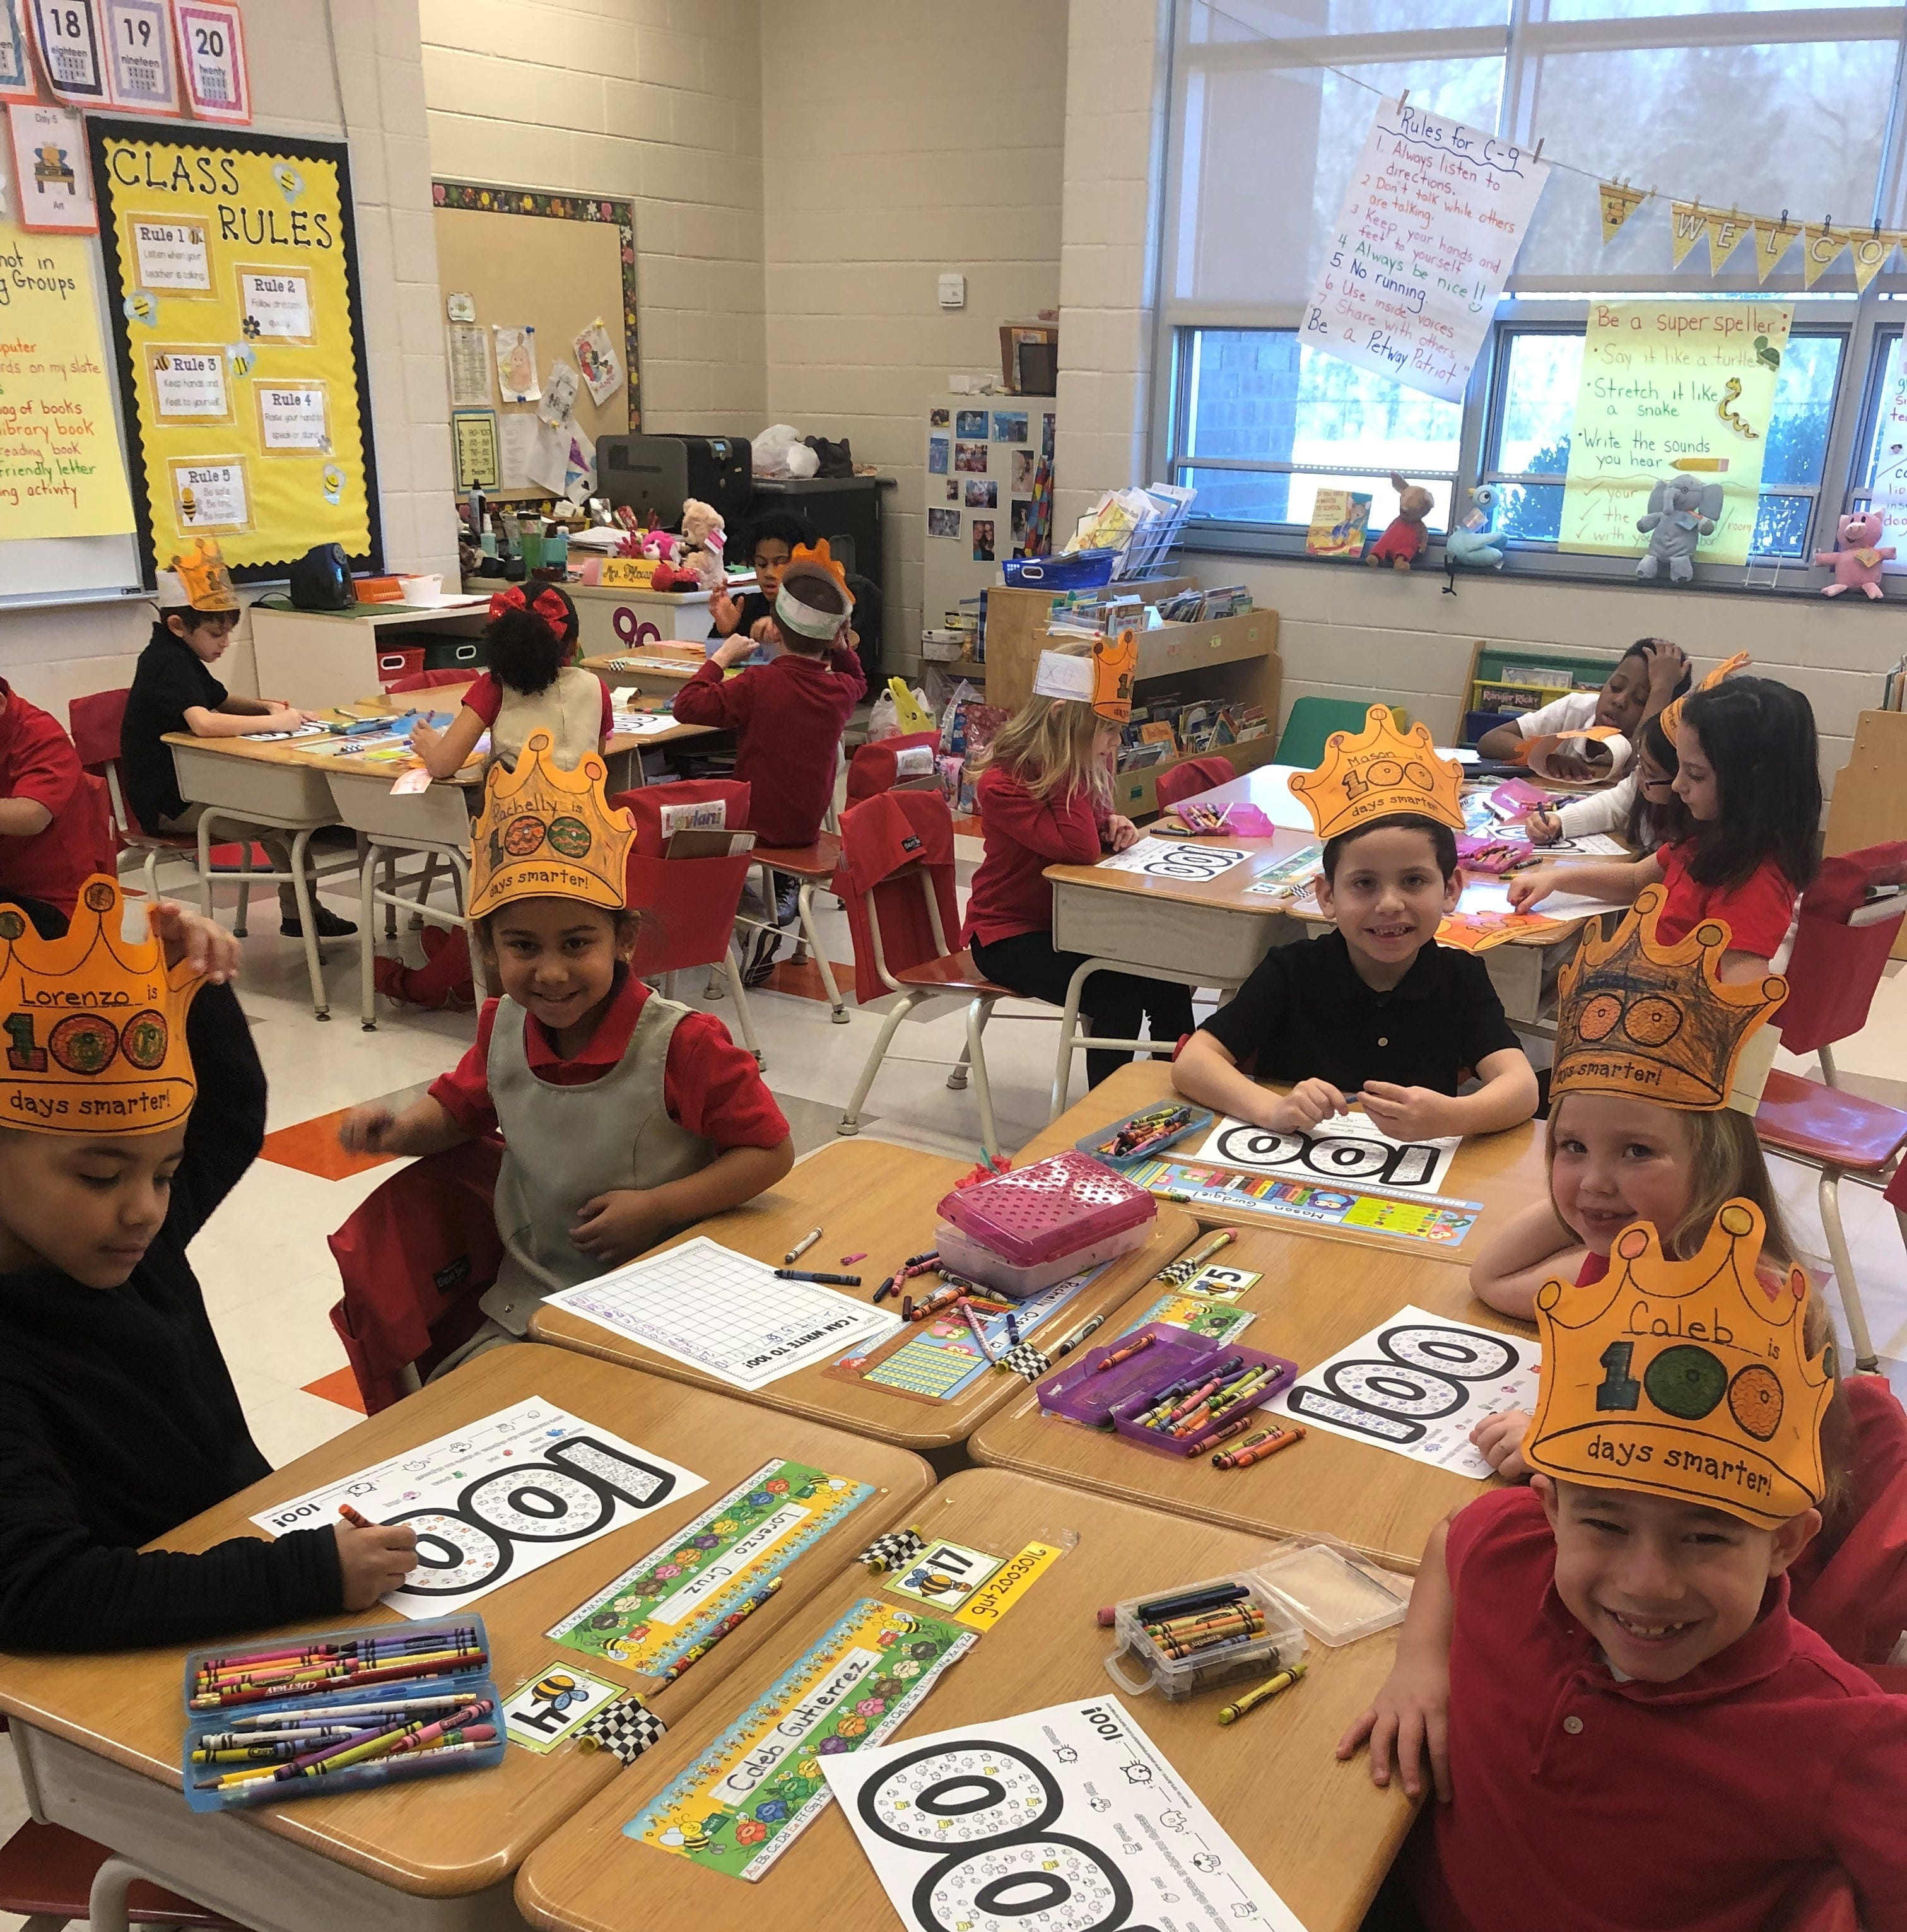 Petway celebrates 100th day of school